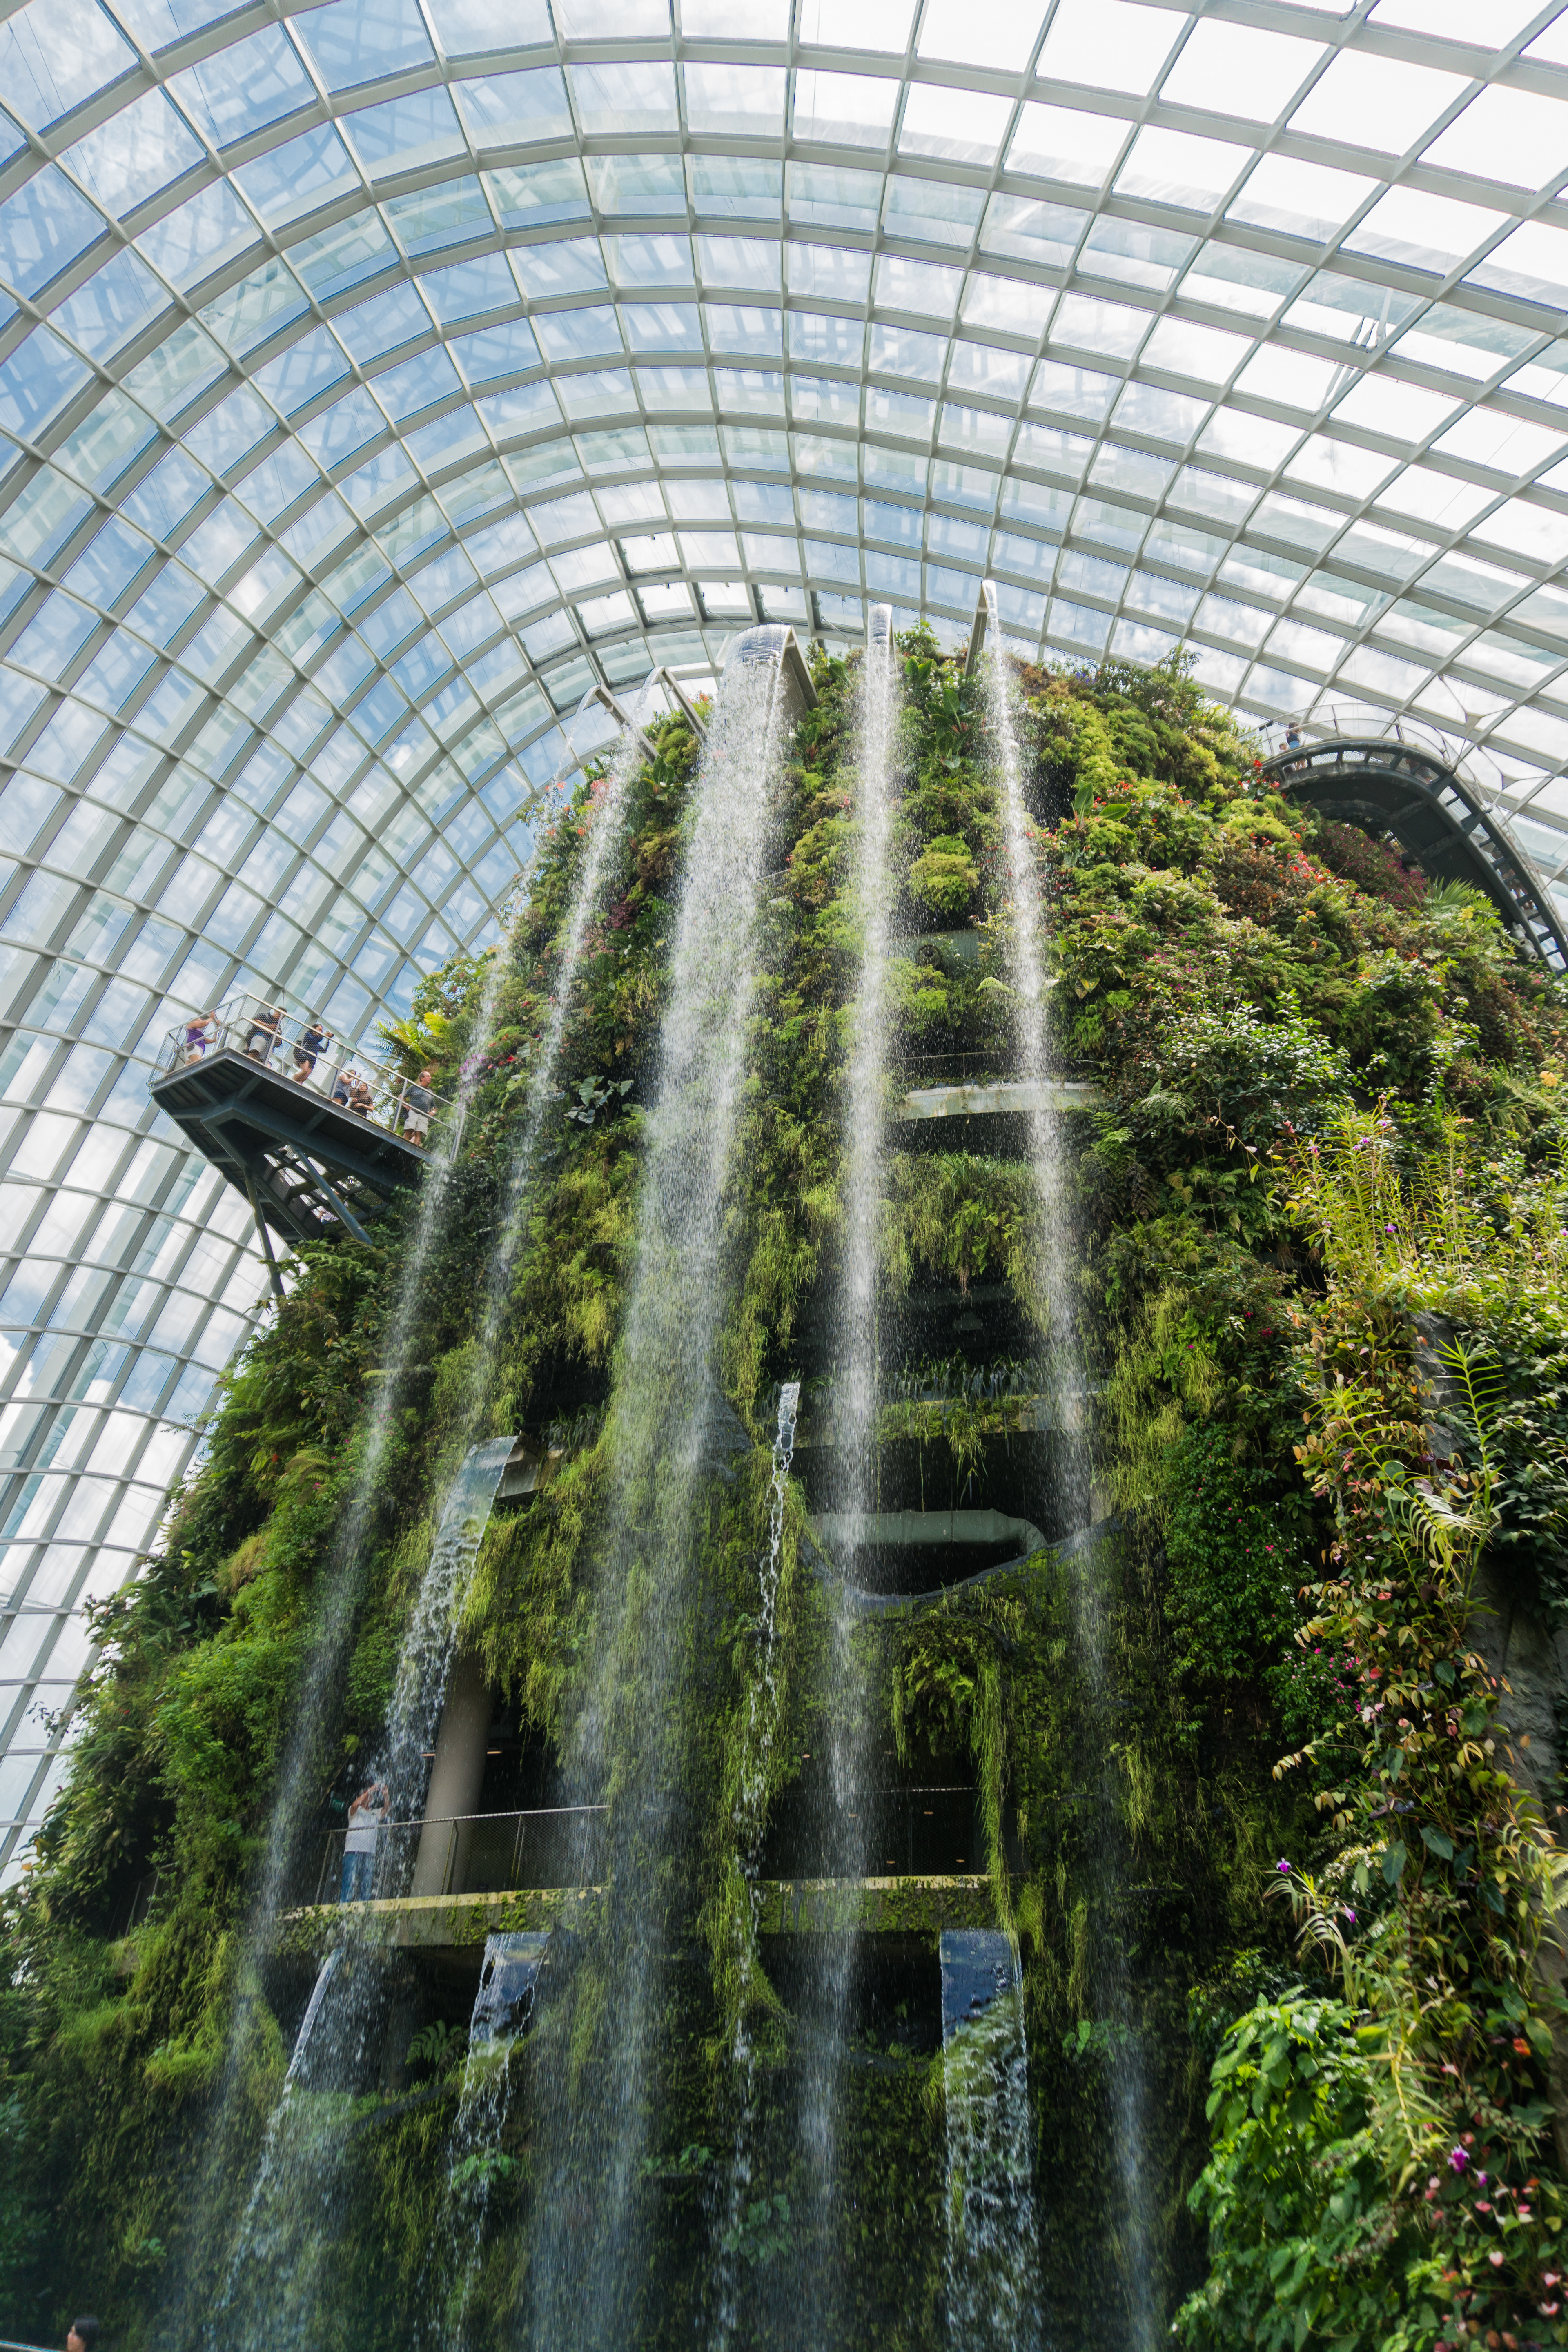 singapore from a garden city to a city in a garden the stated aim is to raise the quality of life by enhancing greenery and flora in the city garden by - Garden By The Bay Eateries